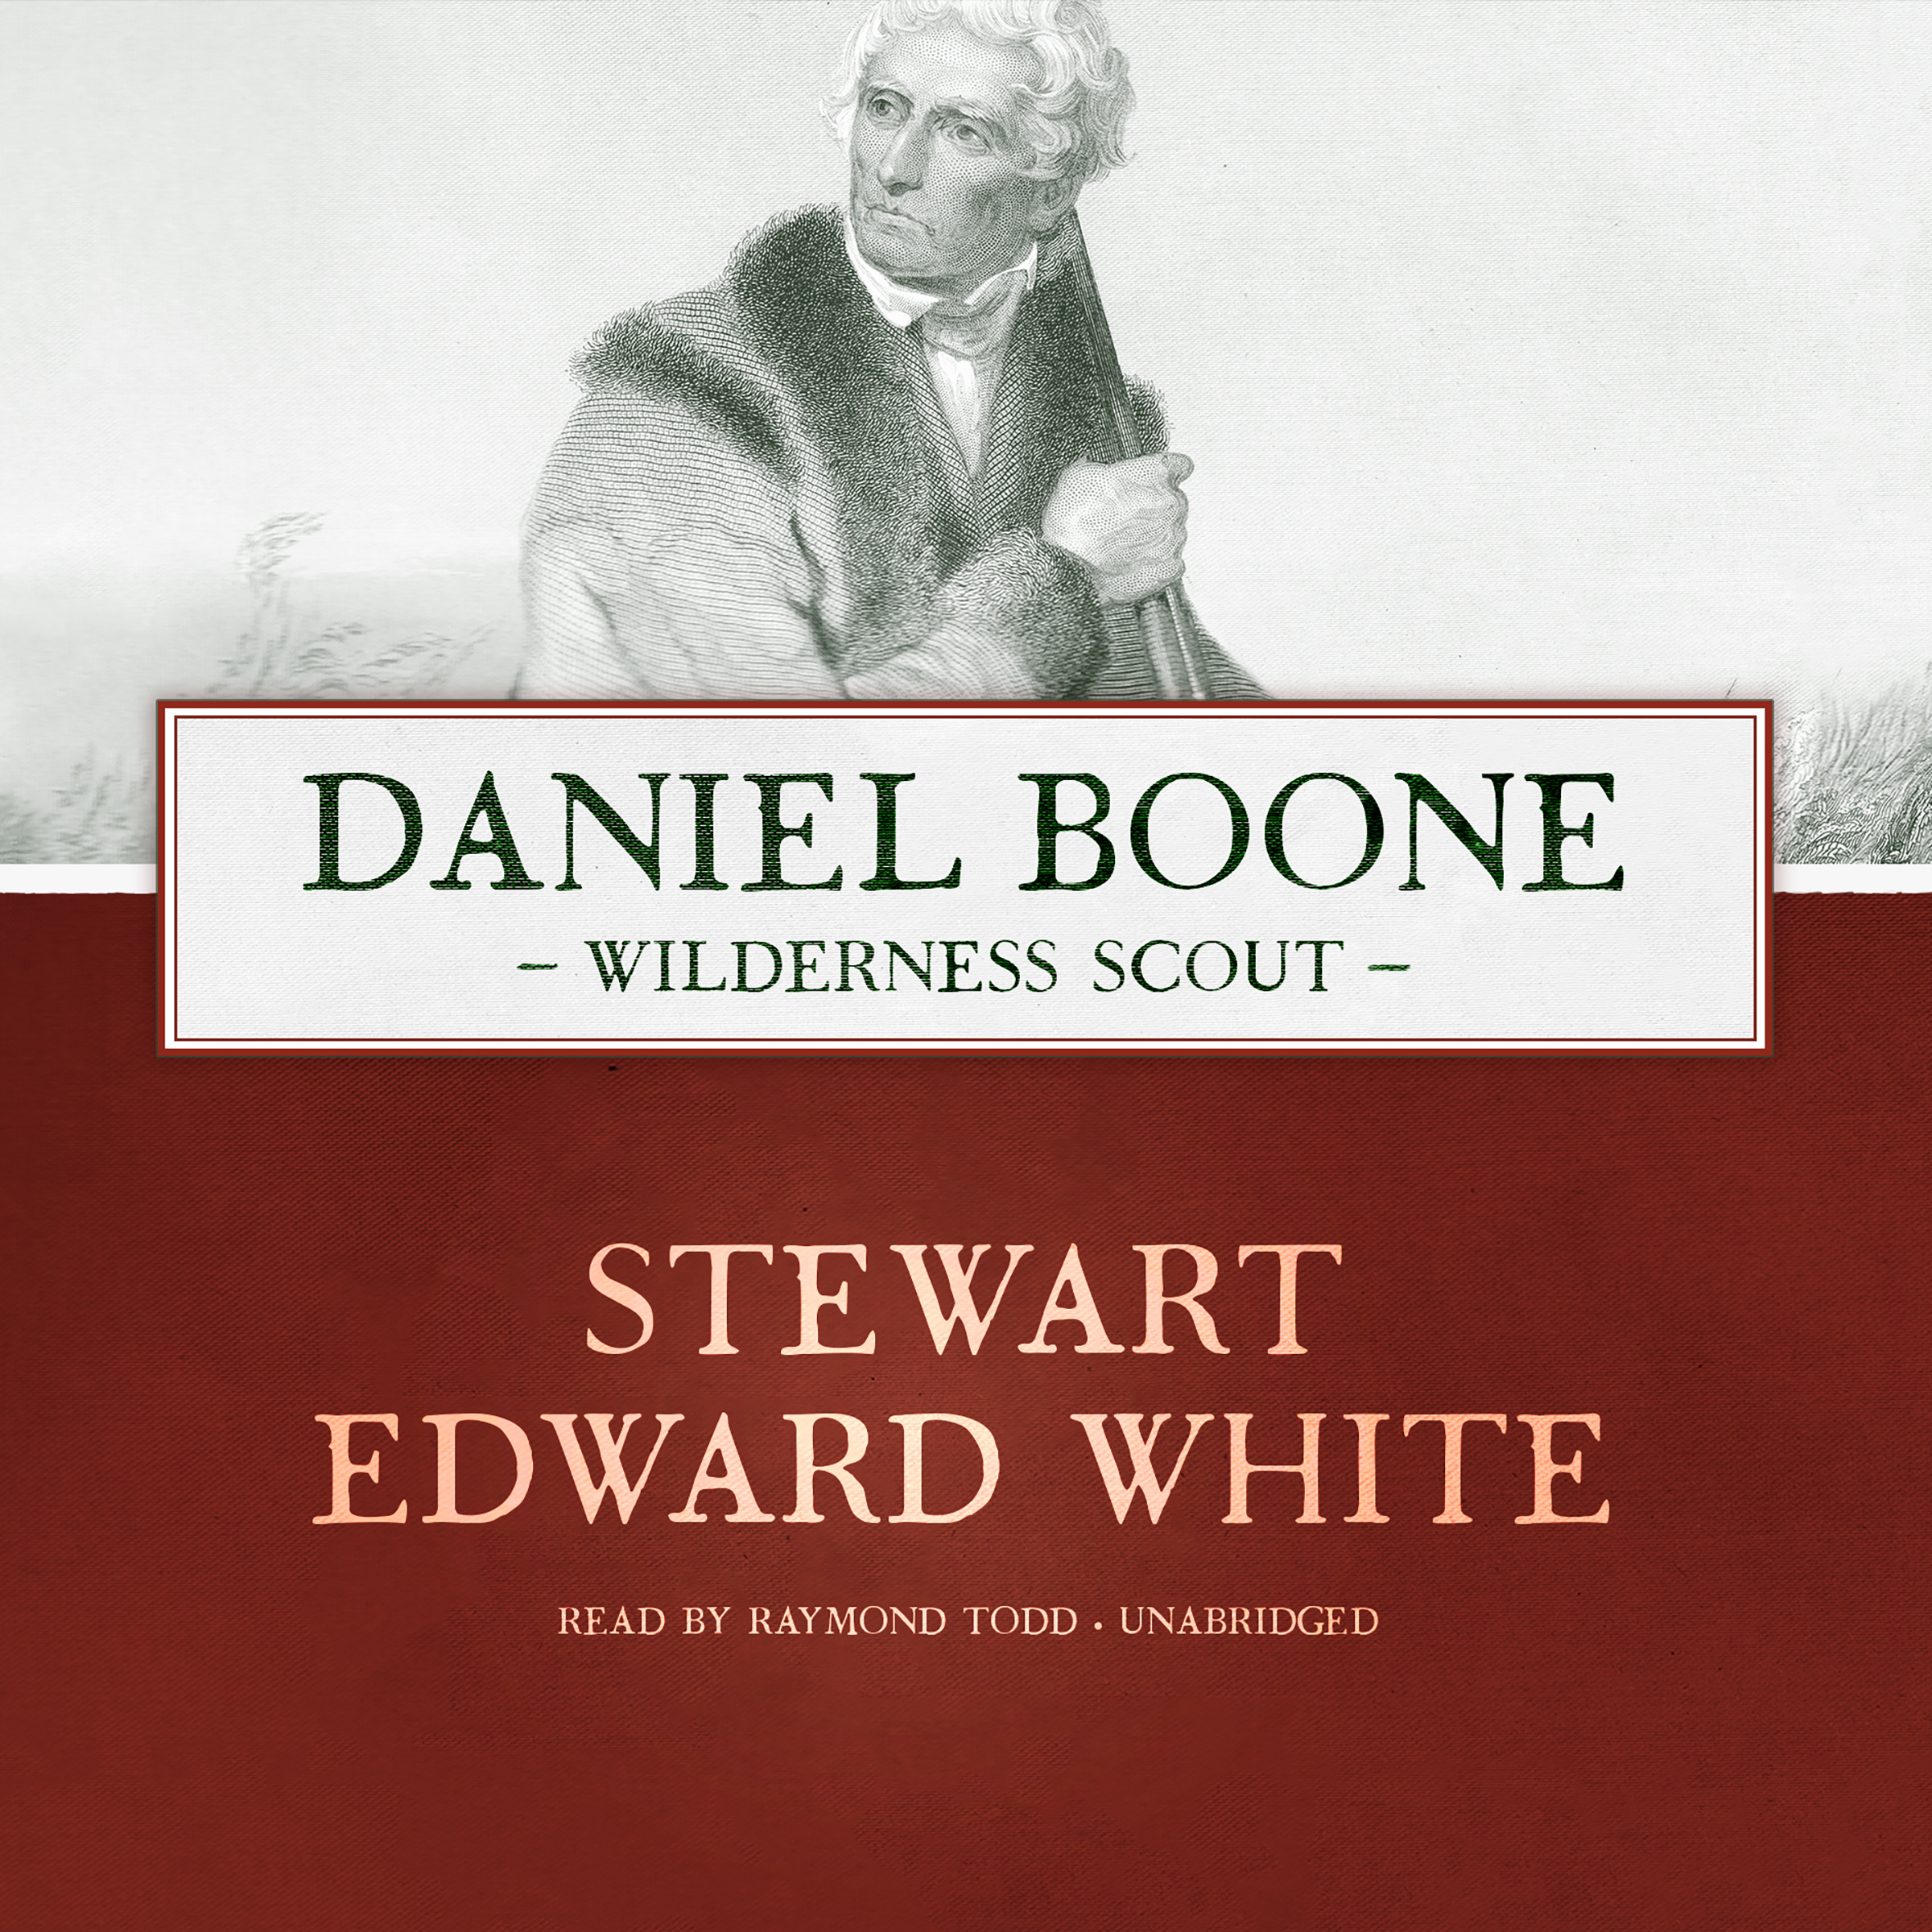 Printable Daniel Boone: Wilderness Scout Audiobook Cover Art